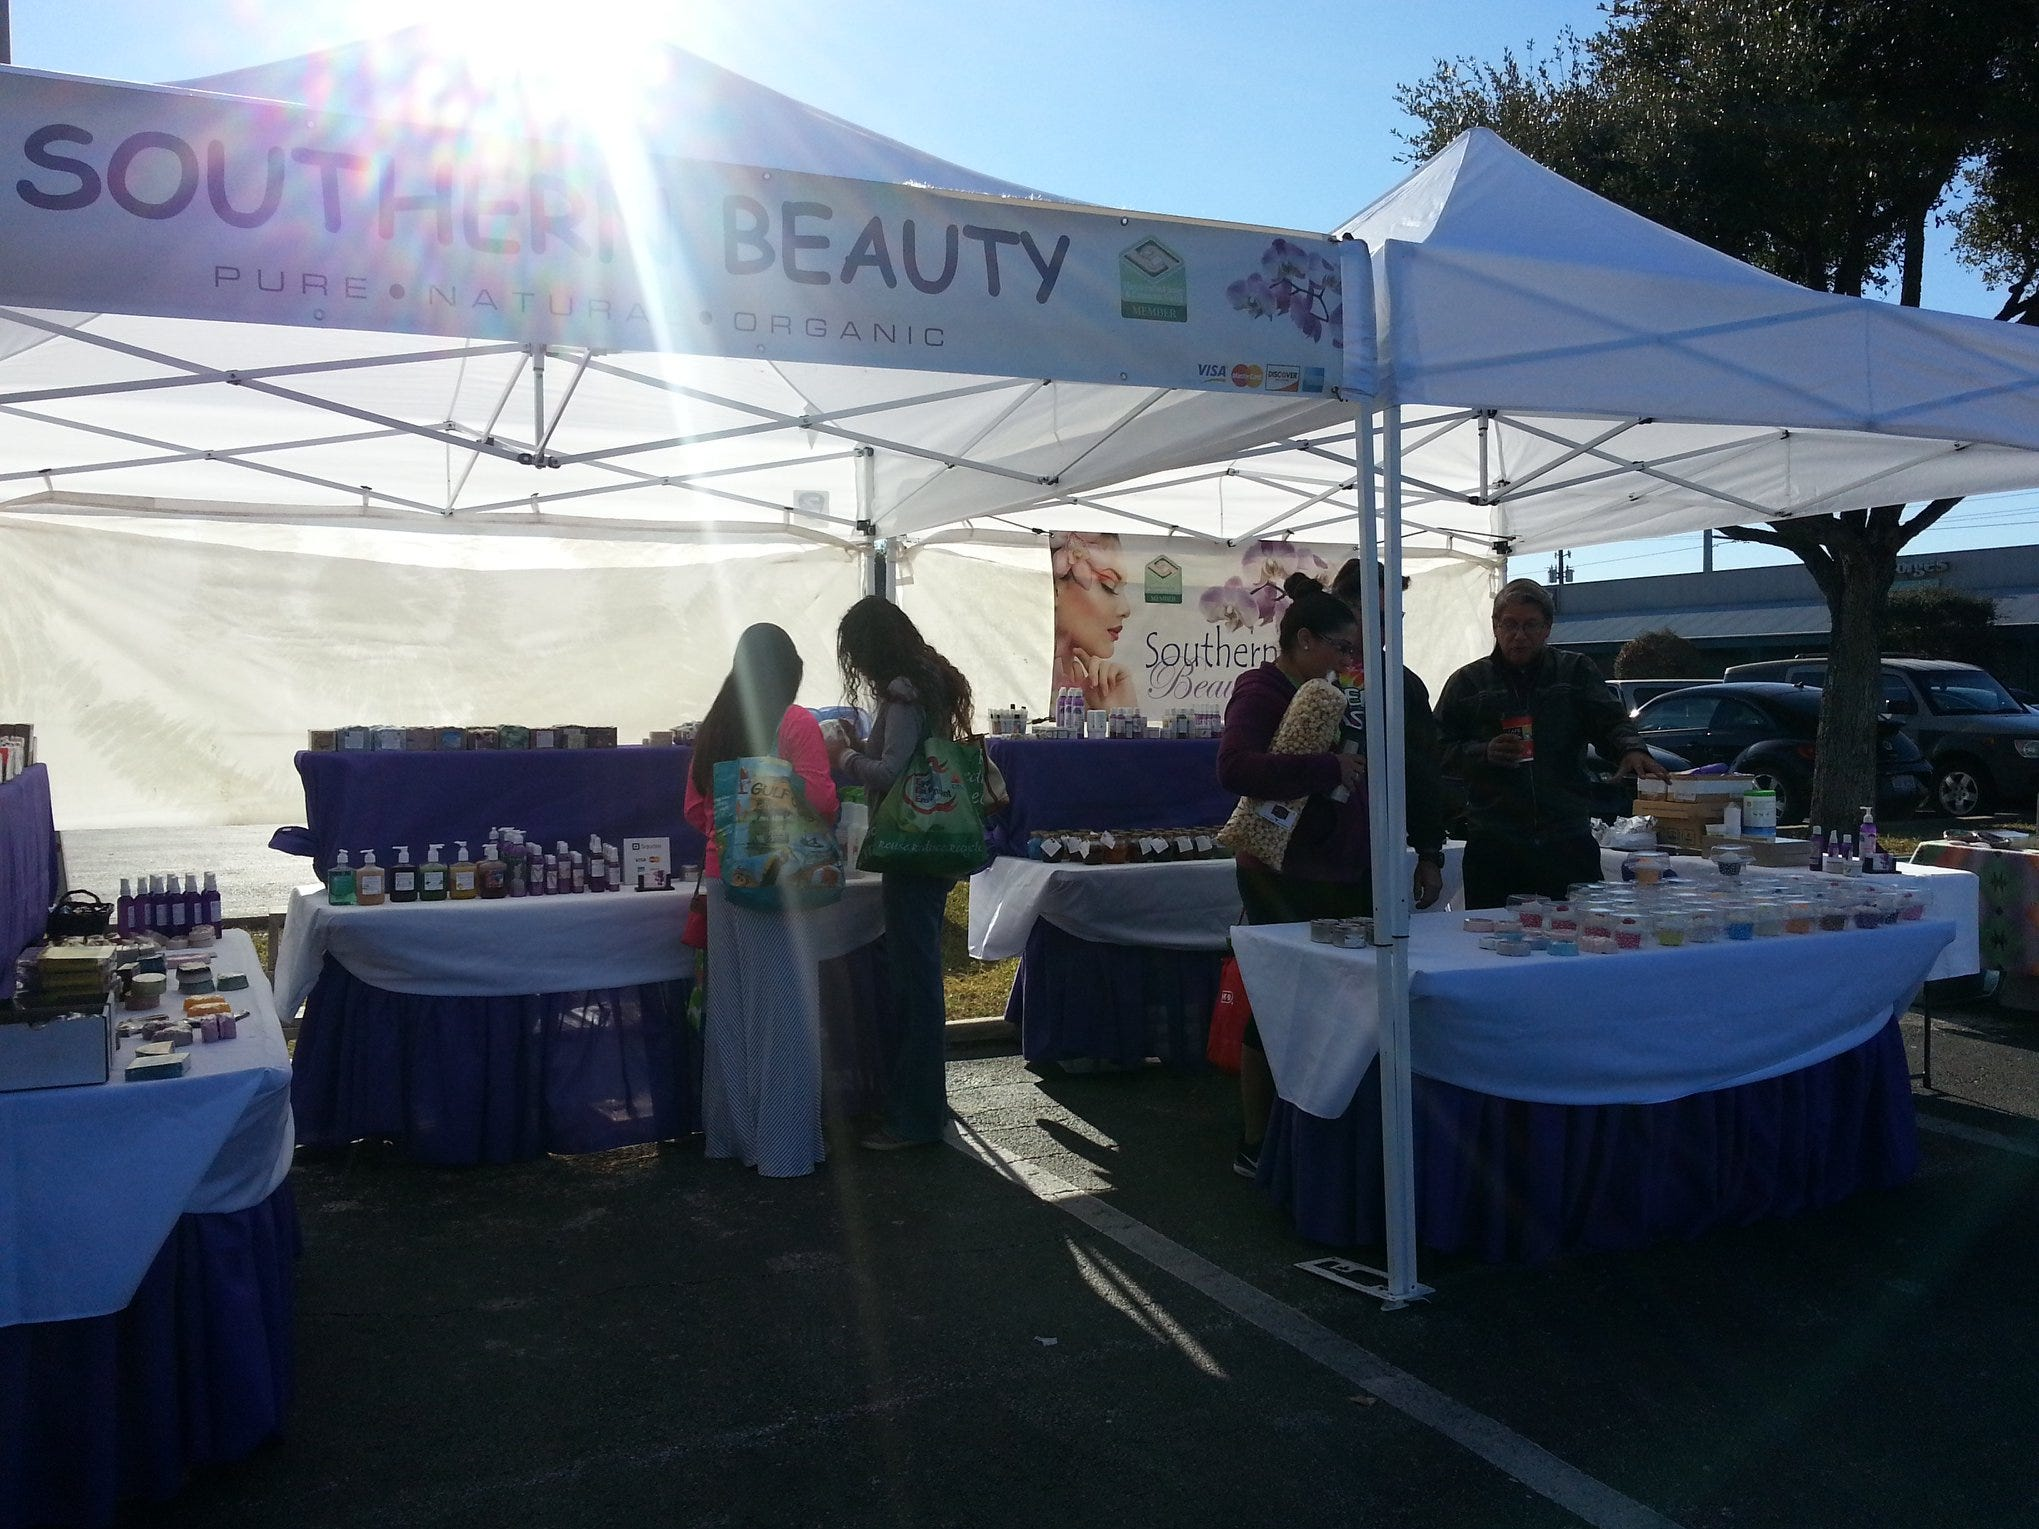 Shoppers can find a variety of beauty care products at the Corpus Christi Southside Farmers' Market. It is open Saturdays from 9 a.m. to noon at 5800 Everhart Road.